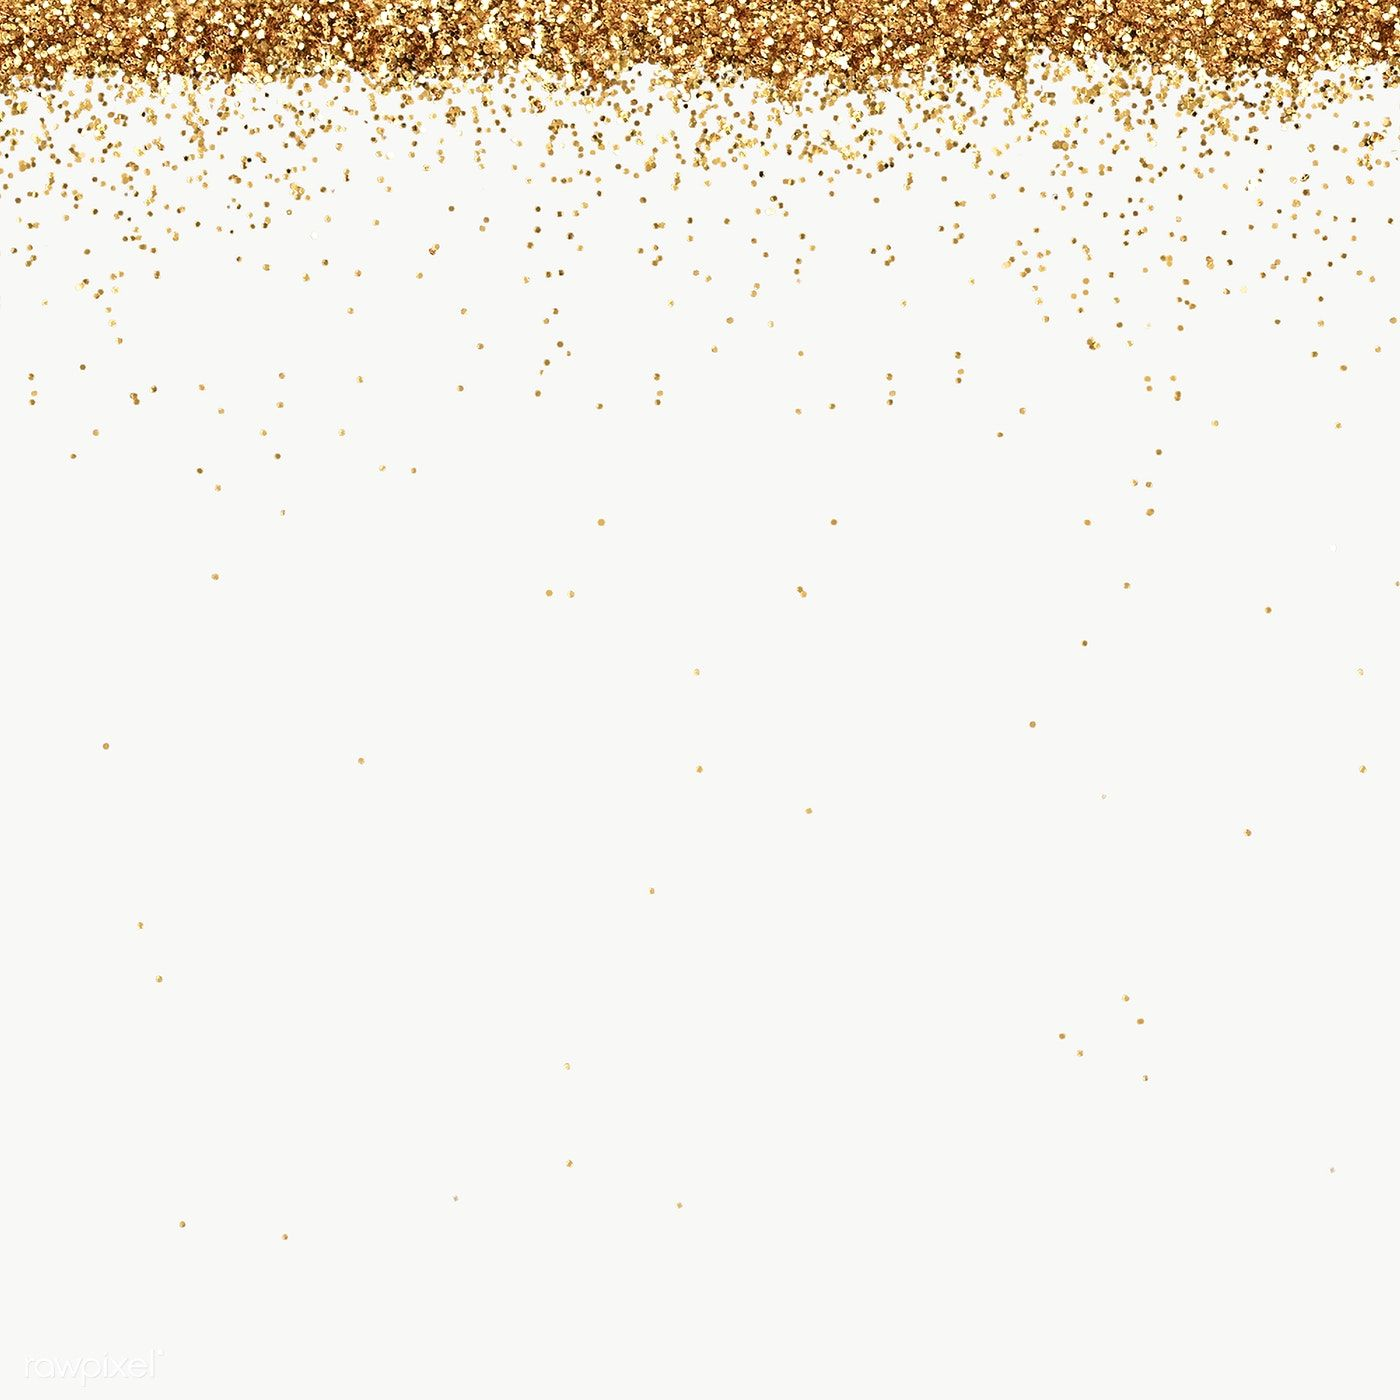 Dusty Gold Particles Pattern Background Transparent Png Free Image By Rawpixel Com Adj Background Patterns Vector Background Pattern Star Background